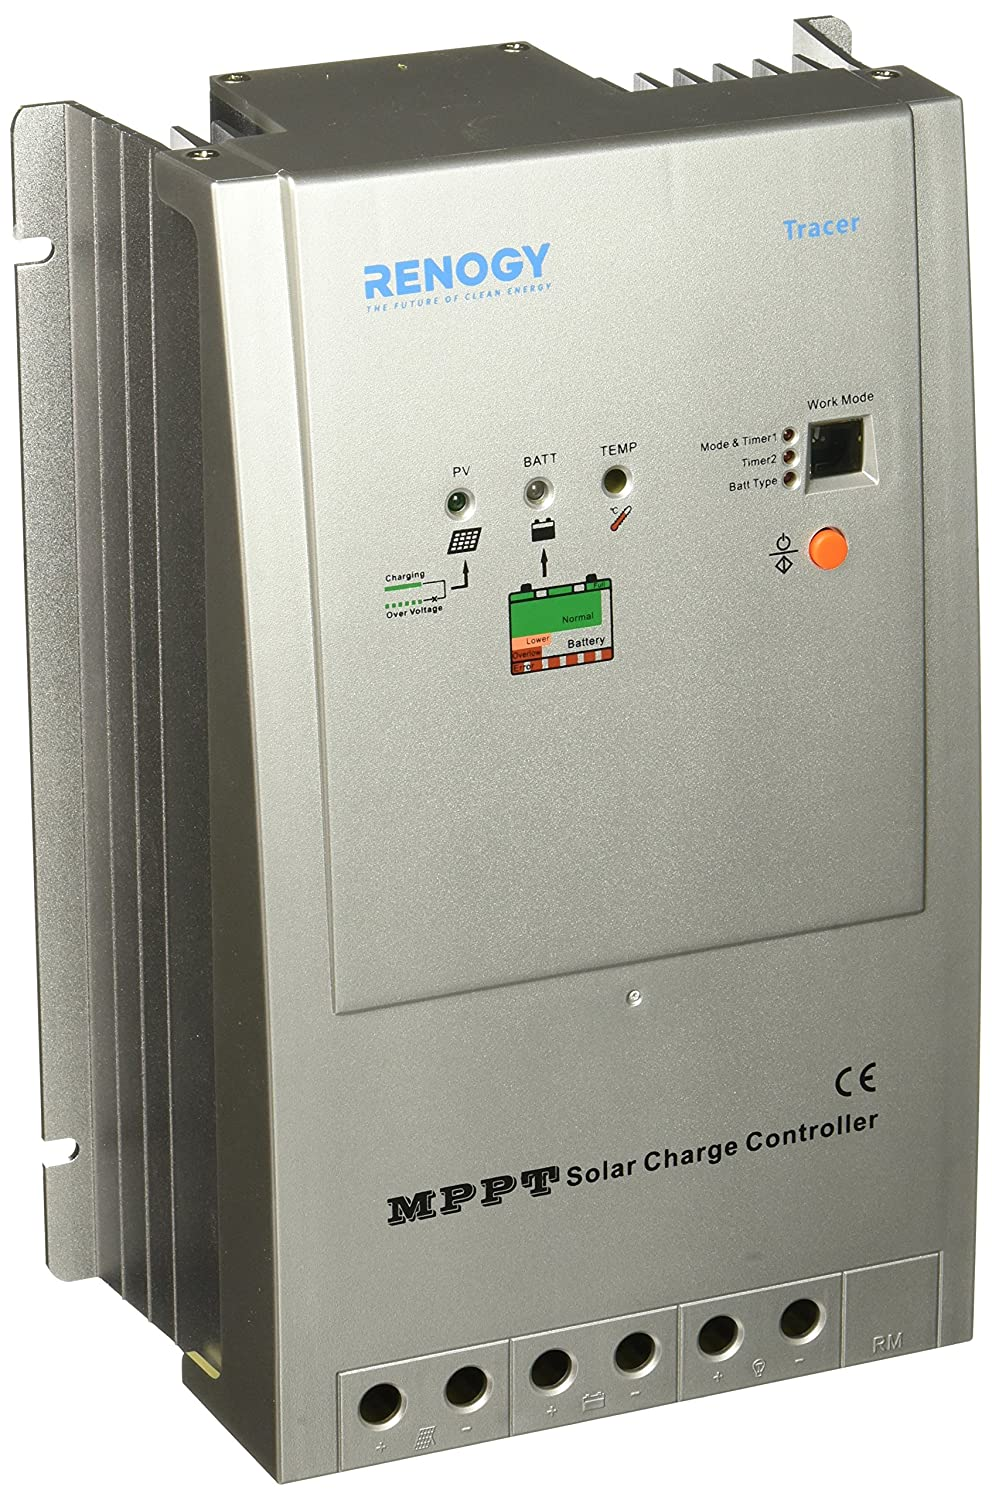 Renogy Tracer 4210 40 Amp Mppt Charge Controller 12 Solar 24v 100vdc Input Renewable Energy Controllers Garden Outdoor